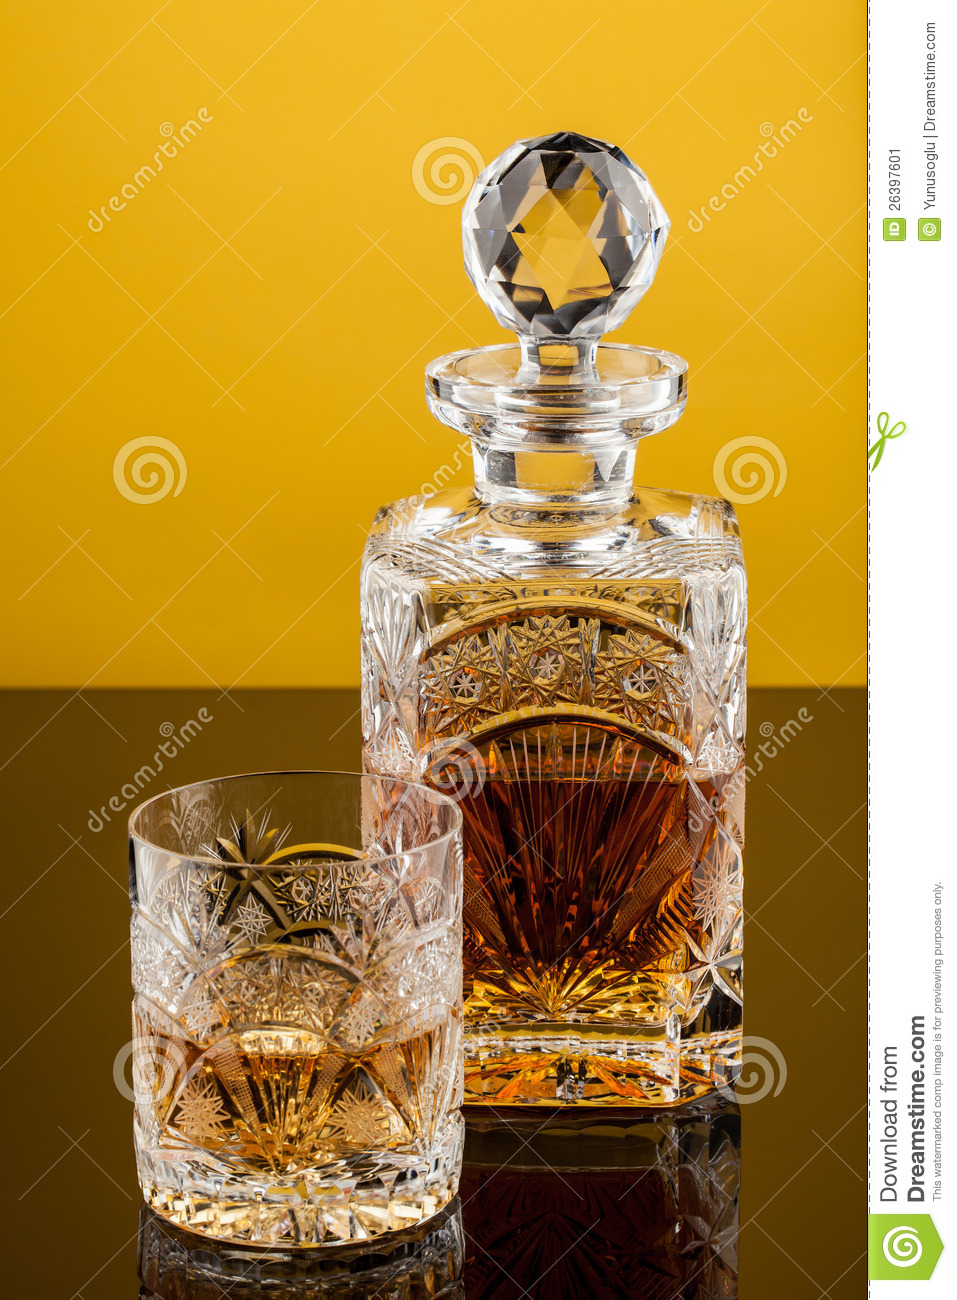 MOST VALUABLE WHISKEY BOTTLES |Whisky Bottle With Glass